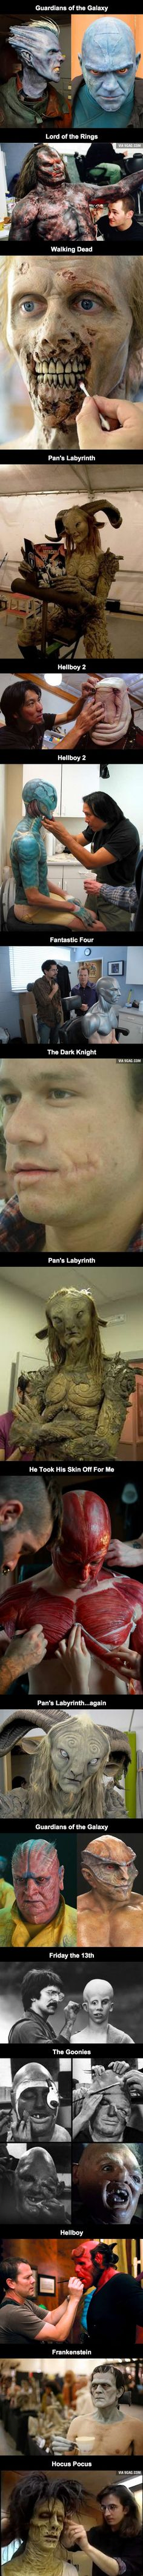 Here's a series of incredible movie makeups